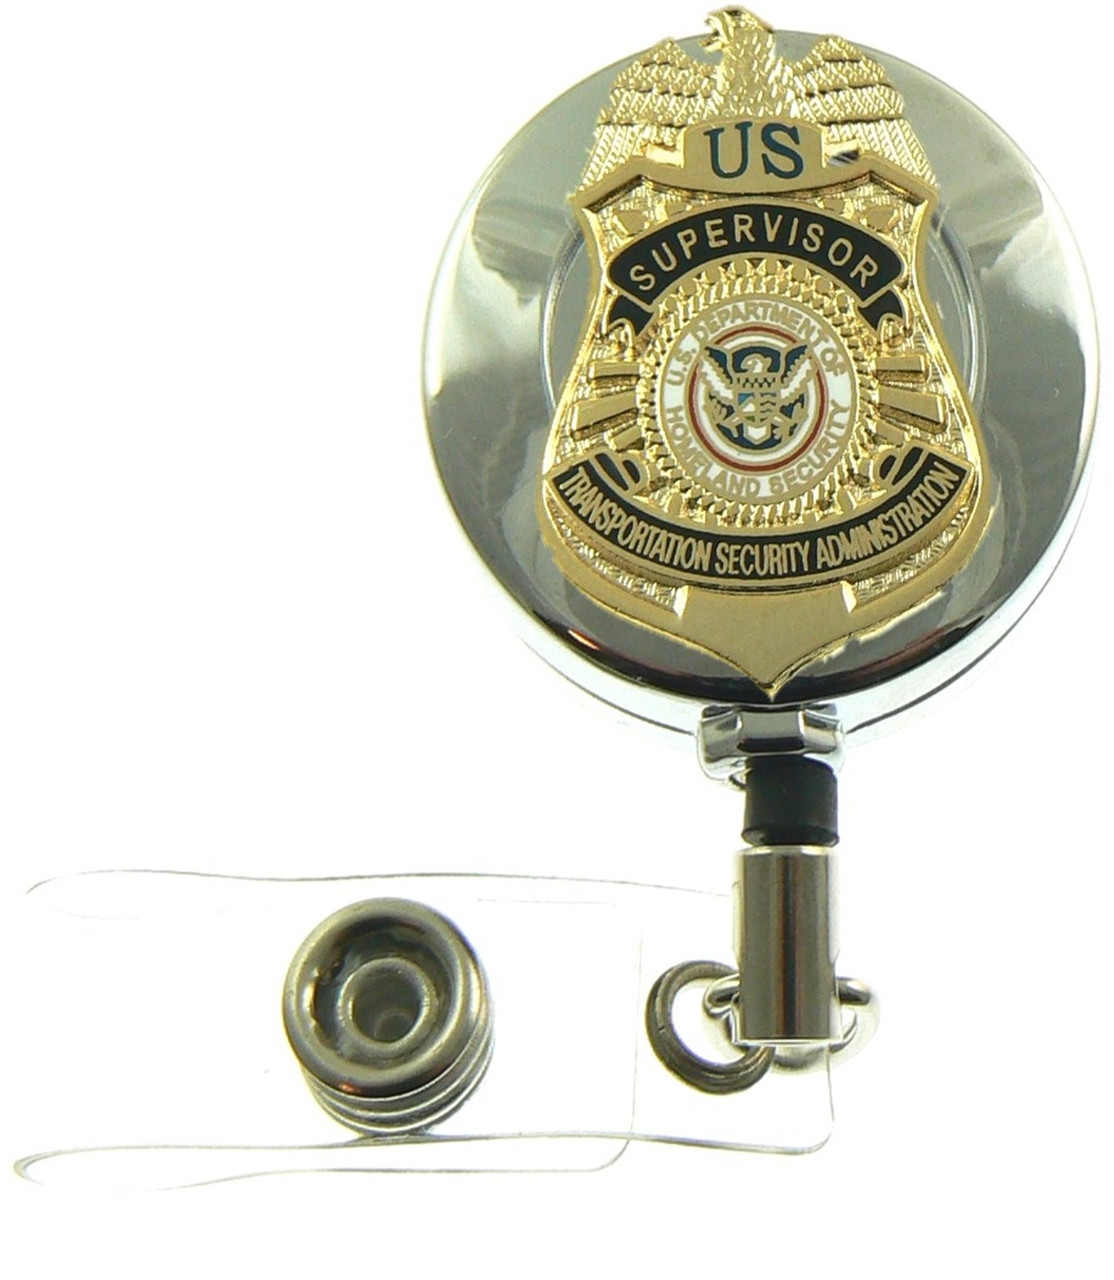 TSA Supervisor Mini Badge Retractable ID Reel Badge Holder